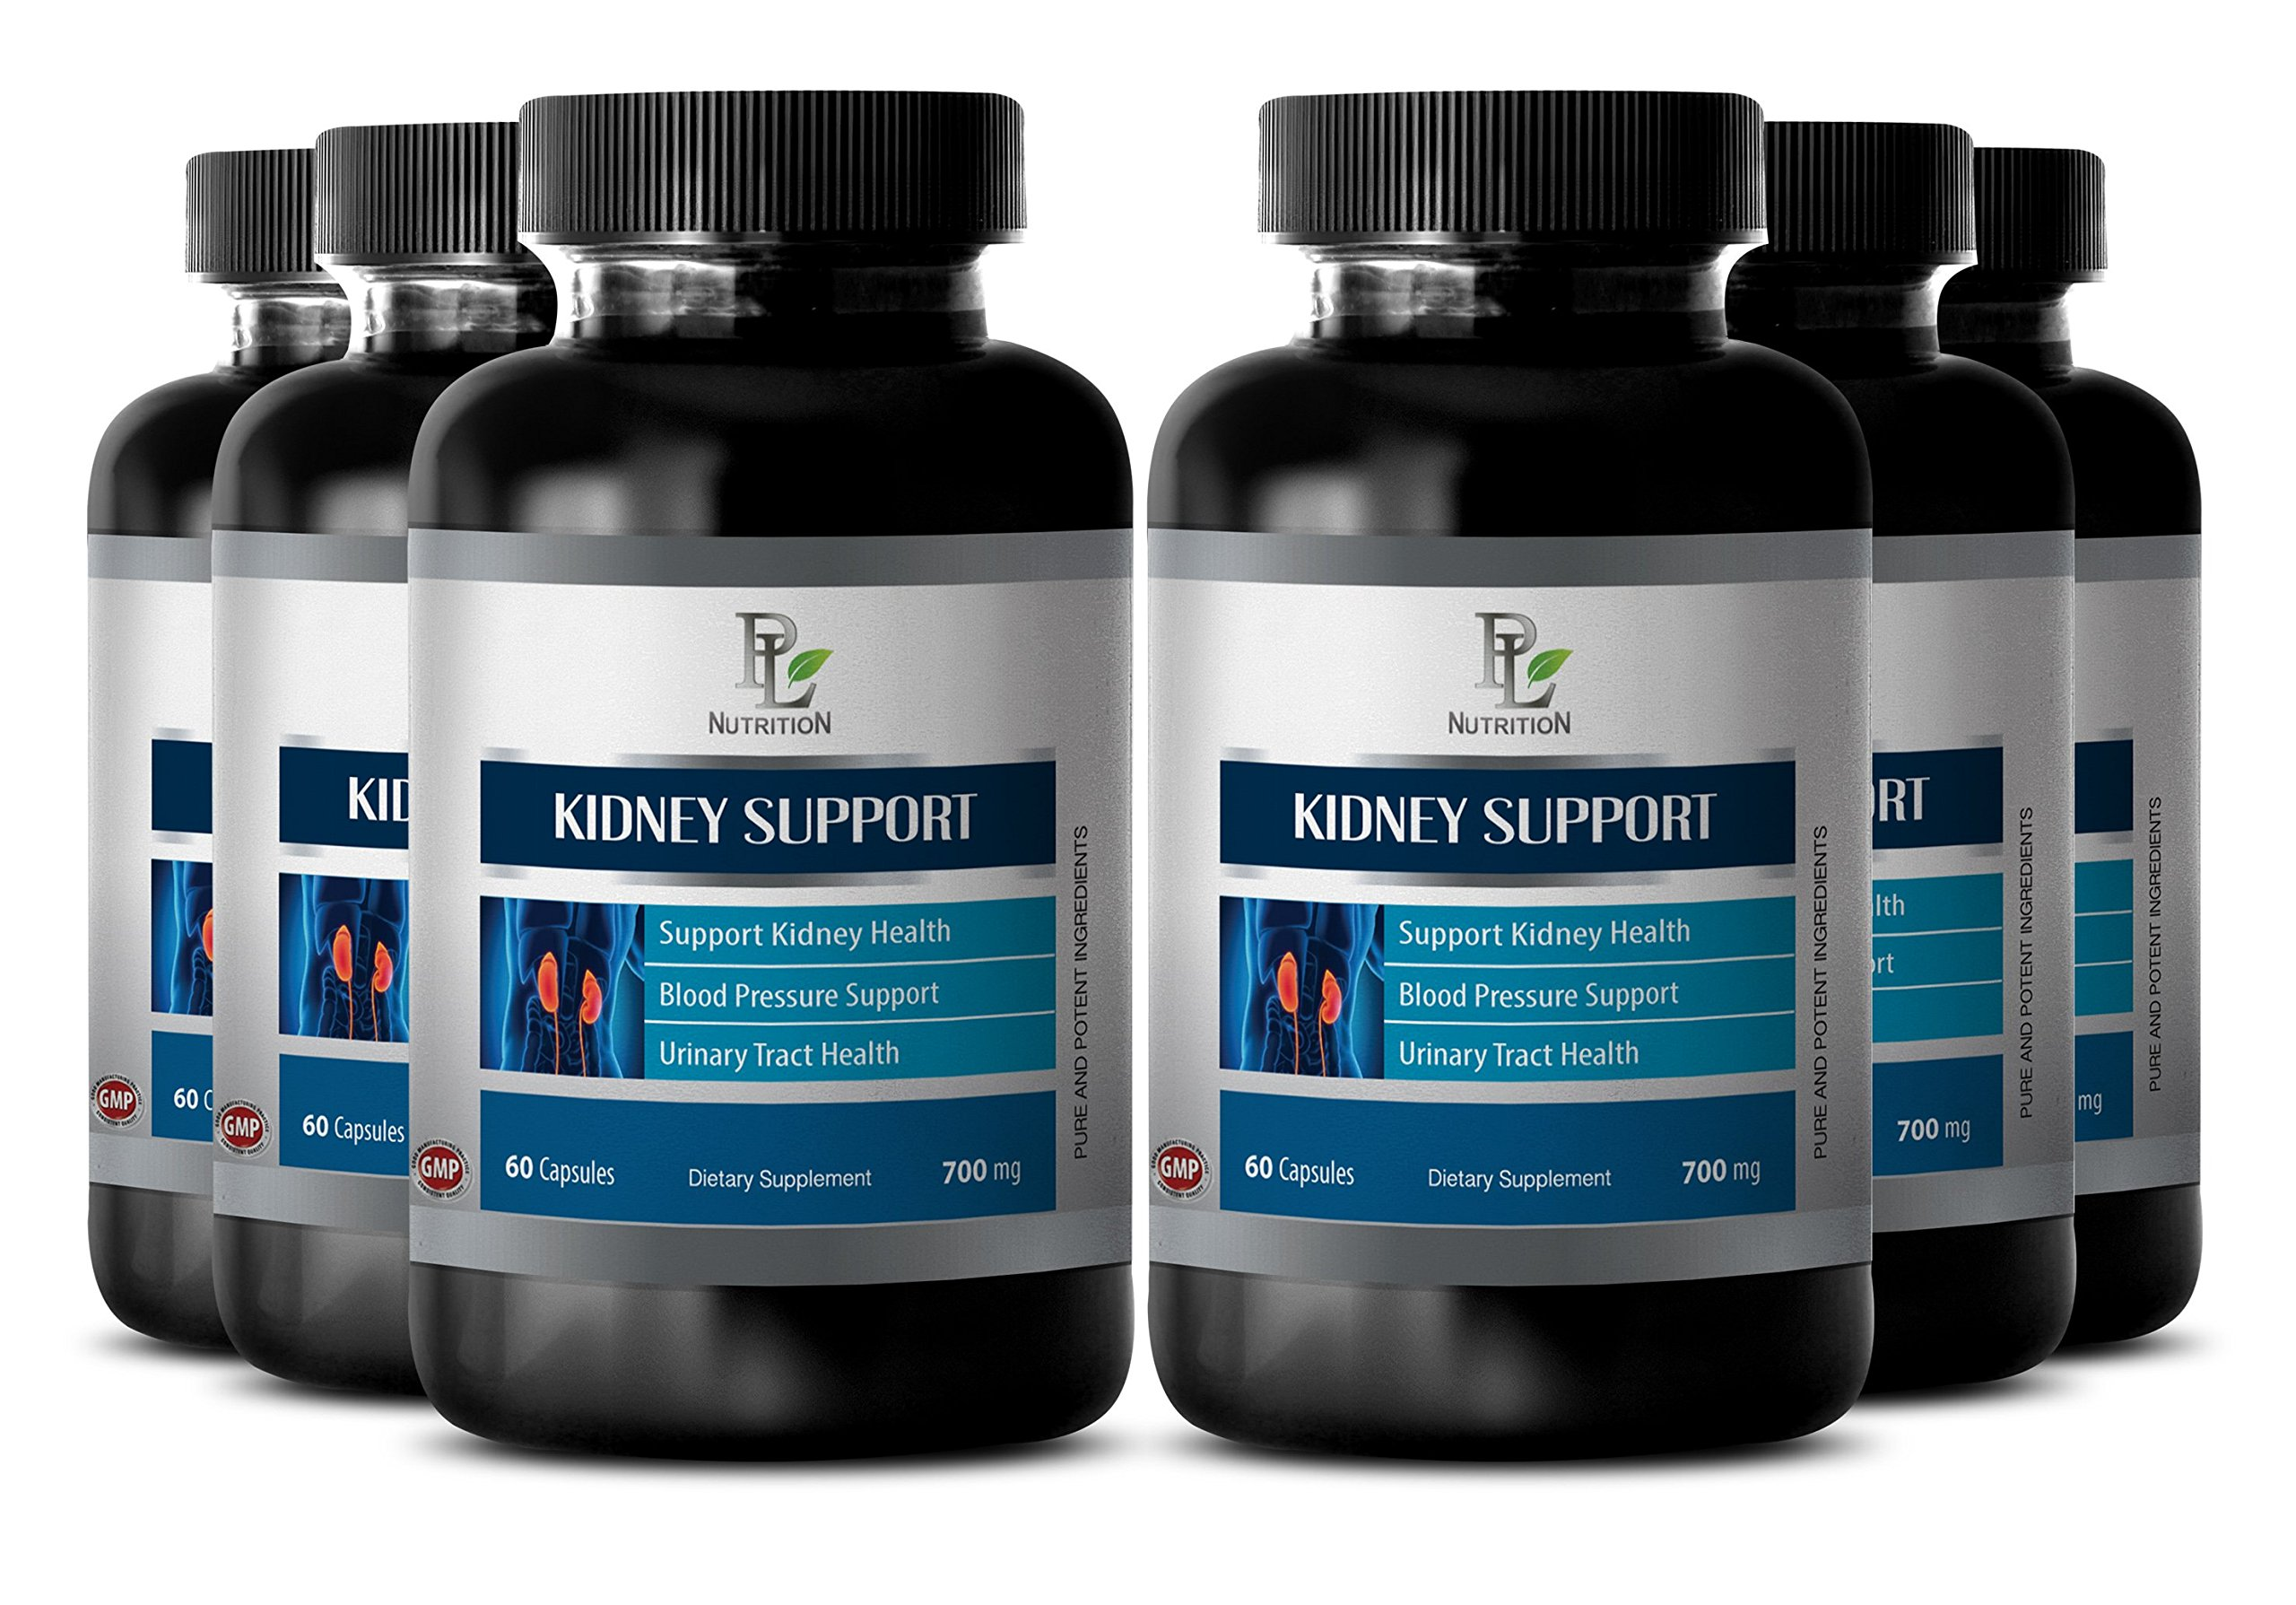 Prostate Health Supplements - Kidney Support Complex - Prostate Supplements - 6 Bottles 360 Capsules by PL NUTRITION